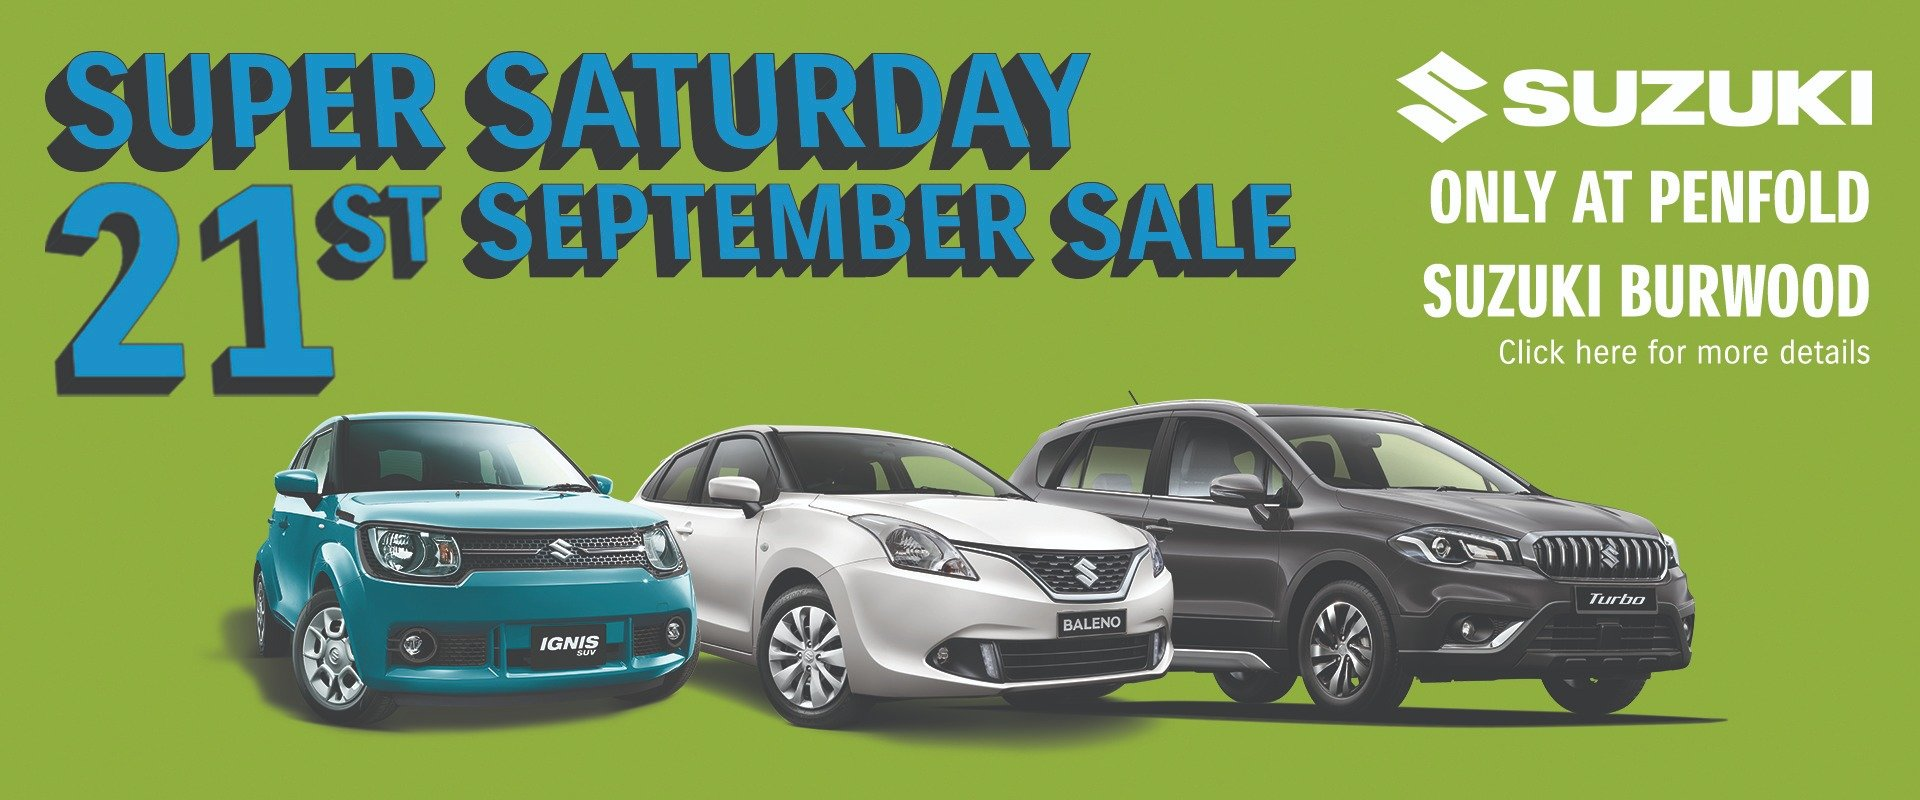 One day sales event